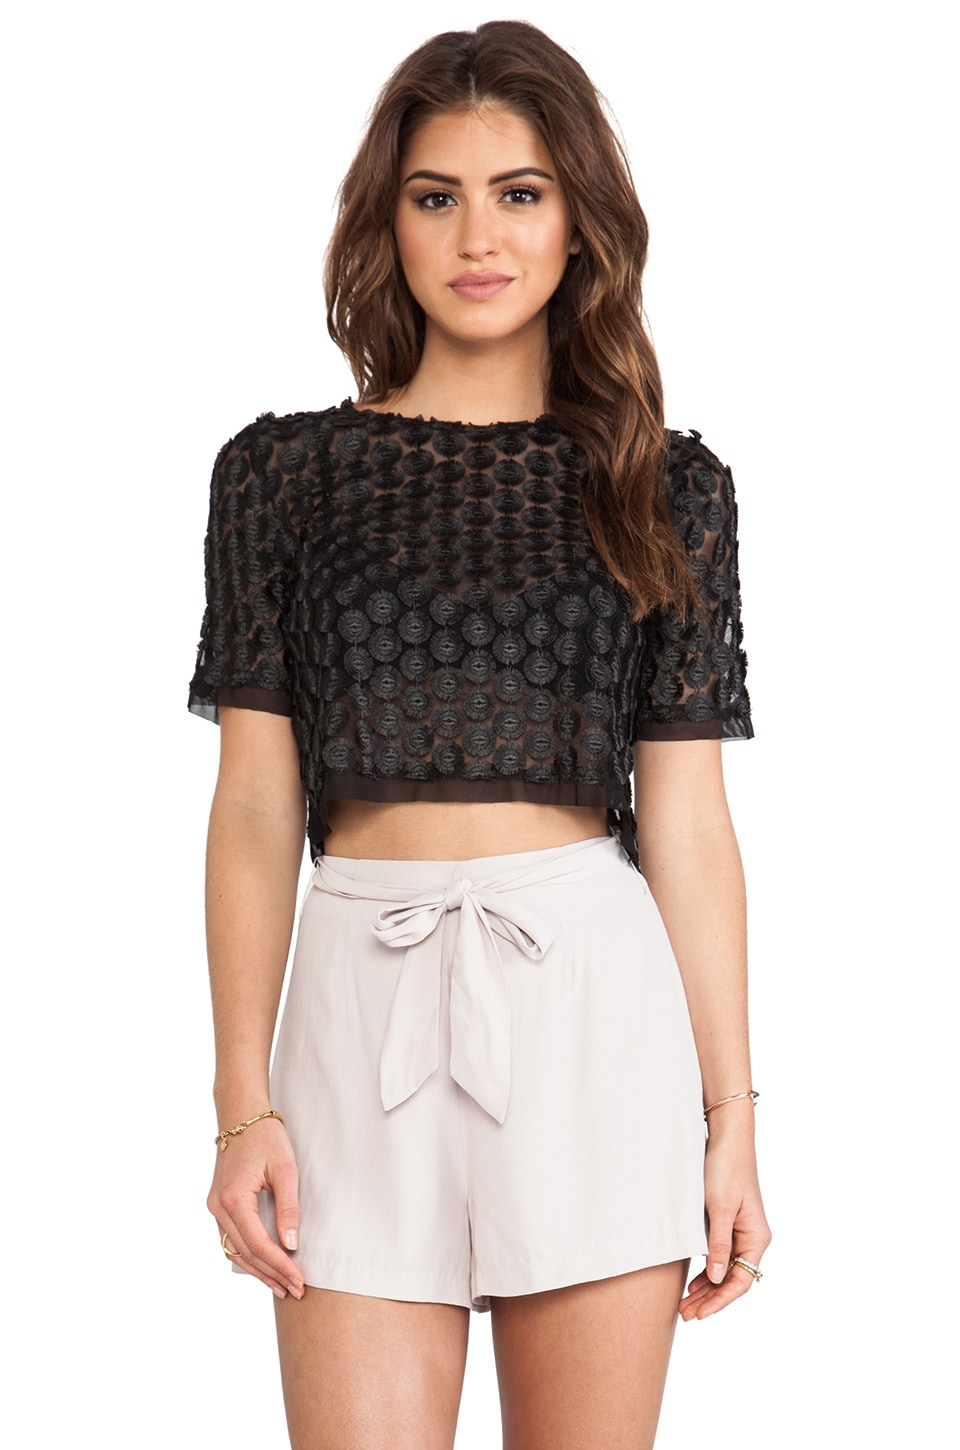 Alexis Lisette Capped Sleeve Lace Top in Black Dalia